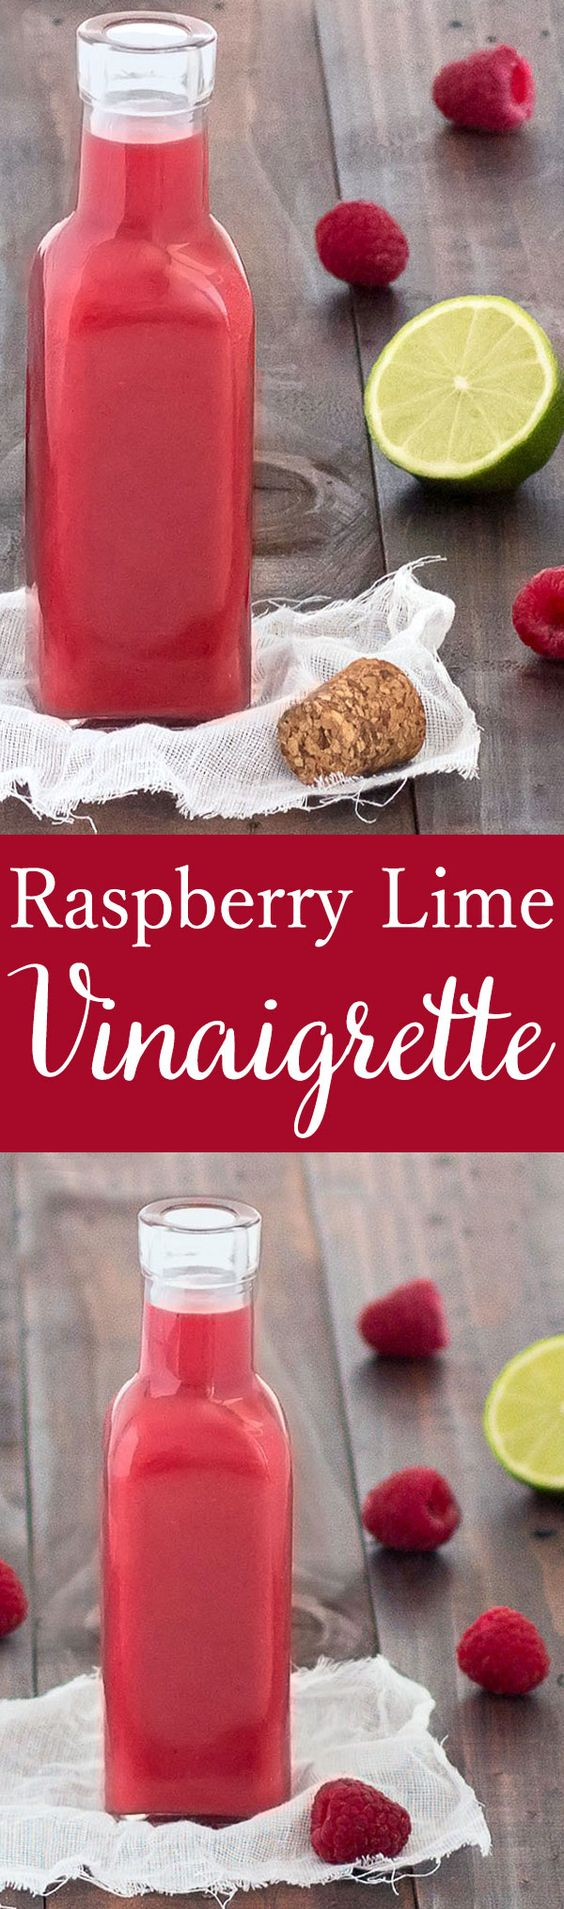 This raspberry lime vinaigrette is very easy to put together. It's fruity, tangy, sweet and and the vibrant pink color will brighten up your same old salad!